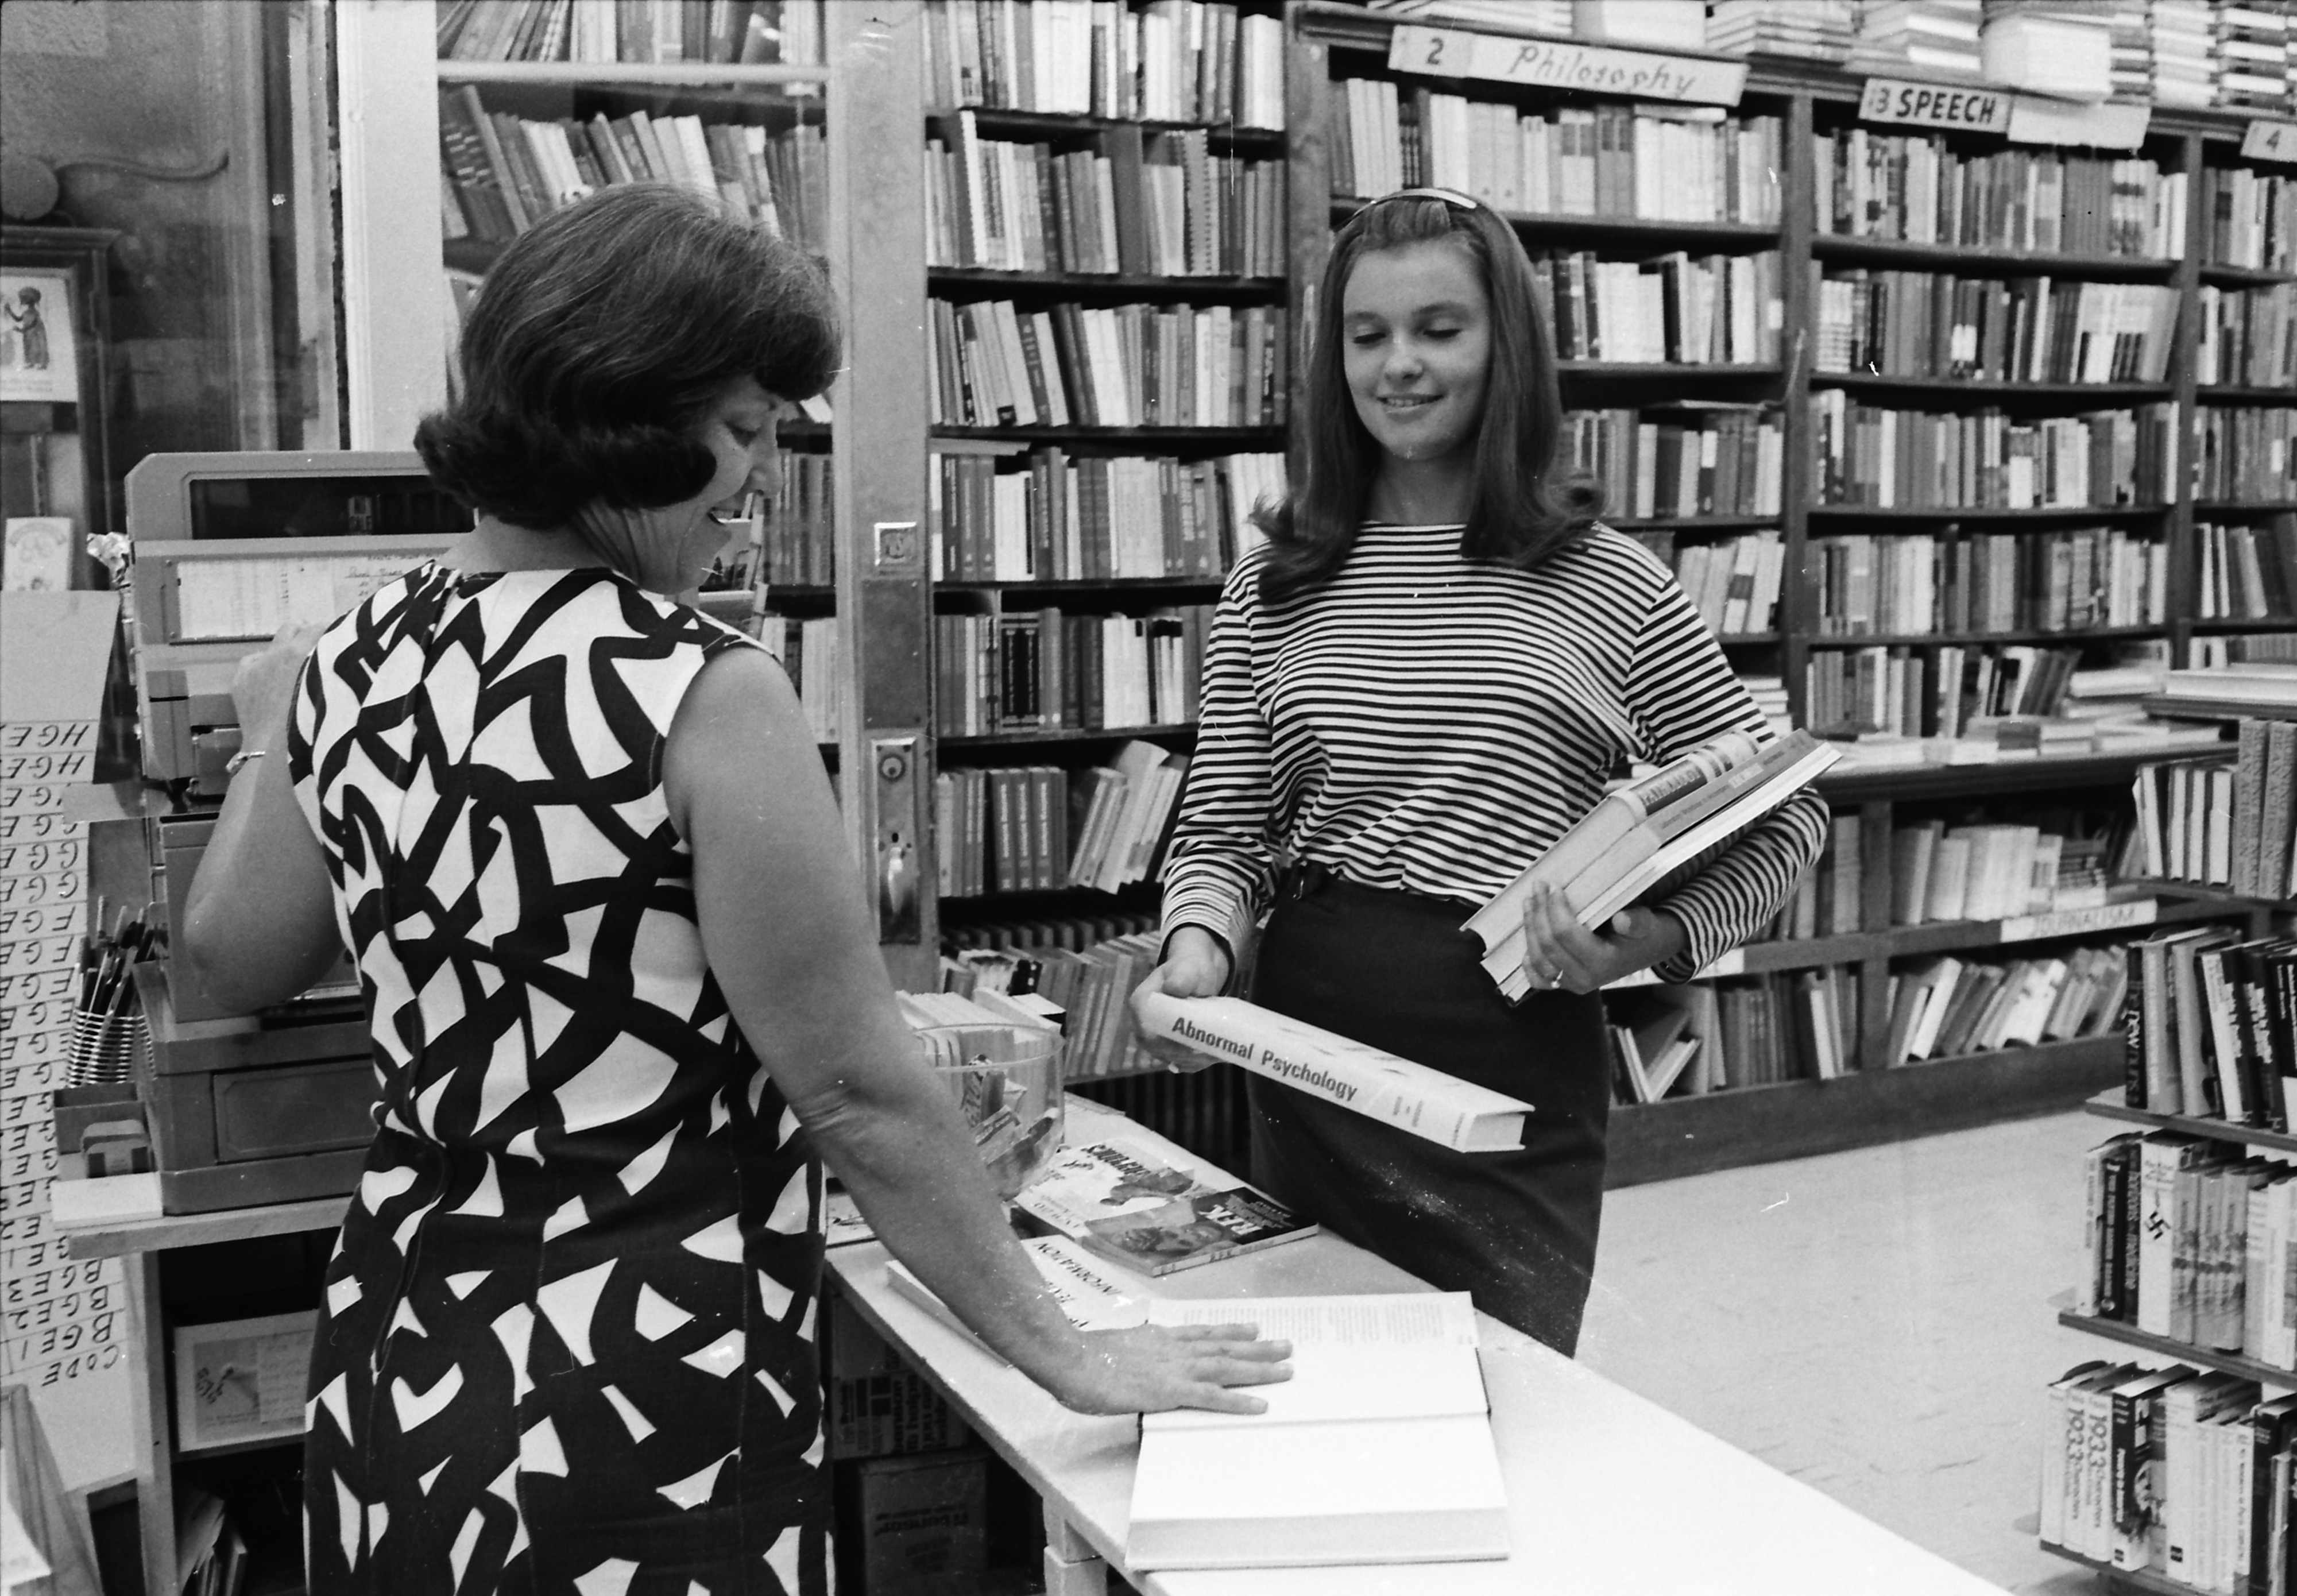 Inside Wahr's Book Store, July 1968 image